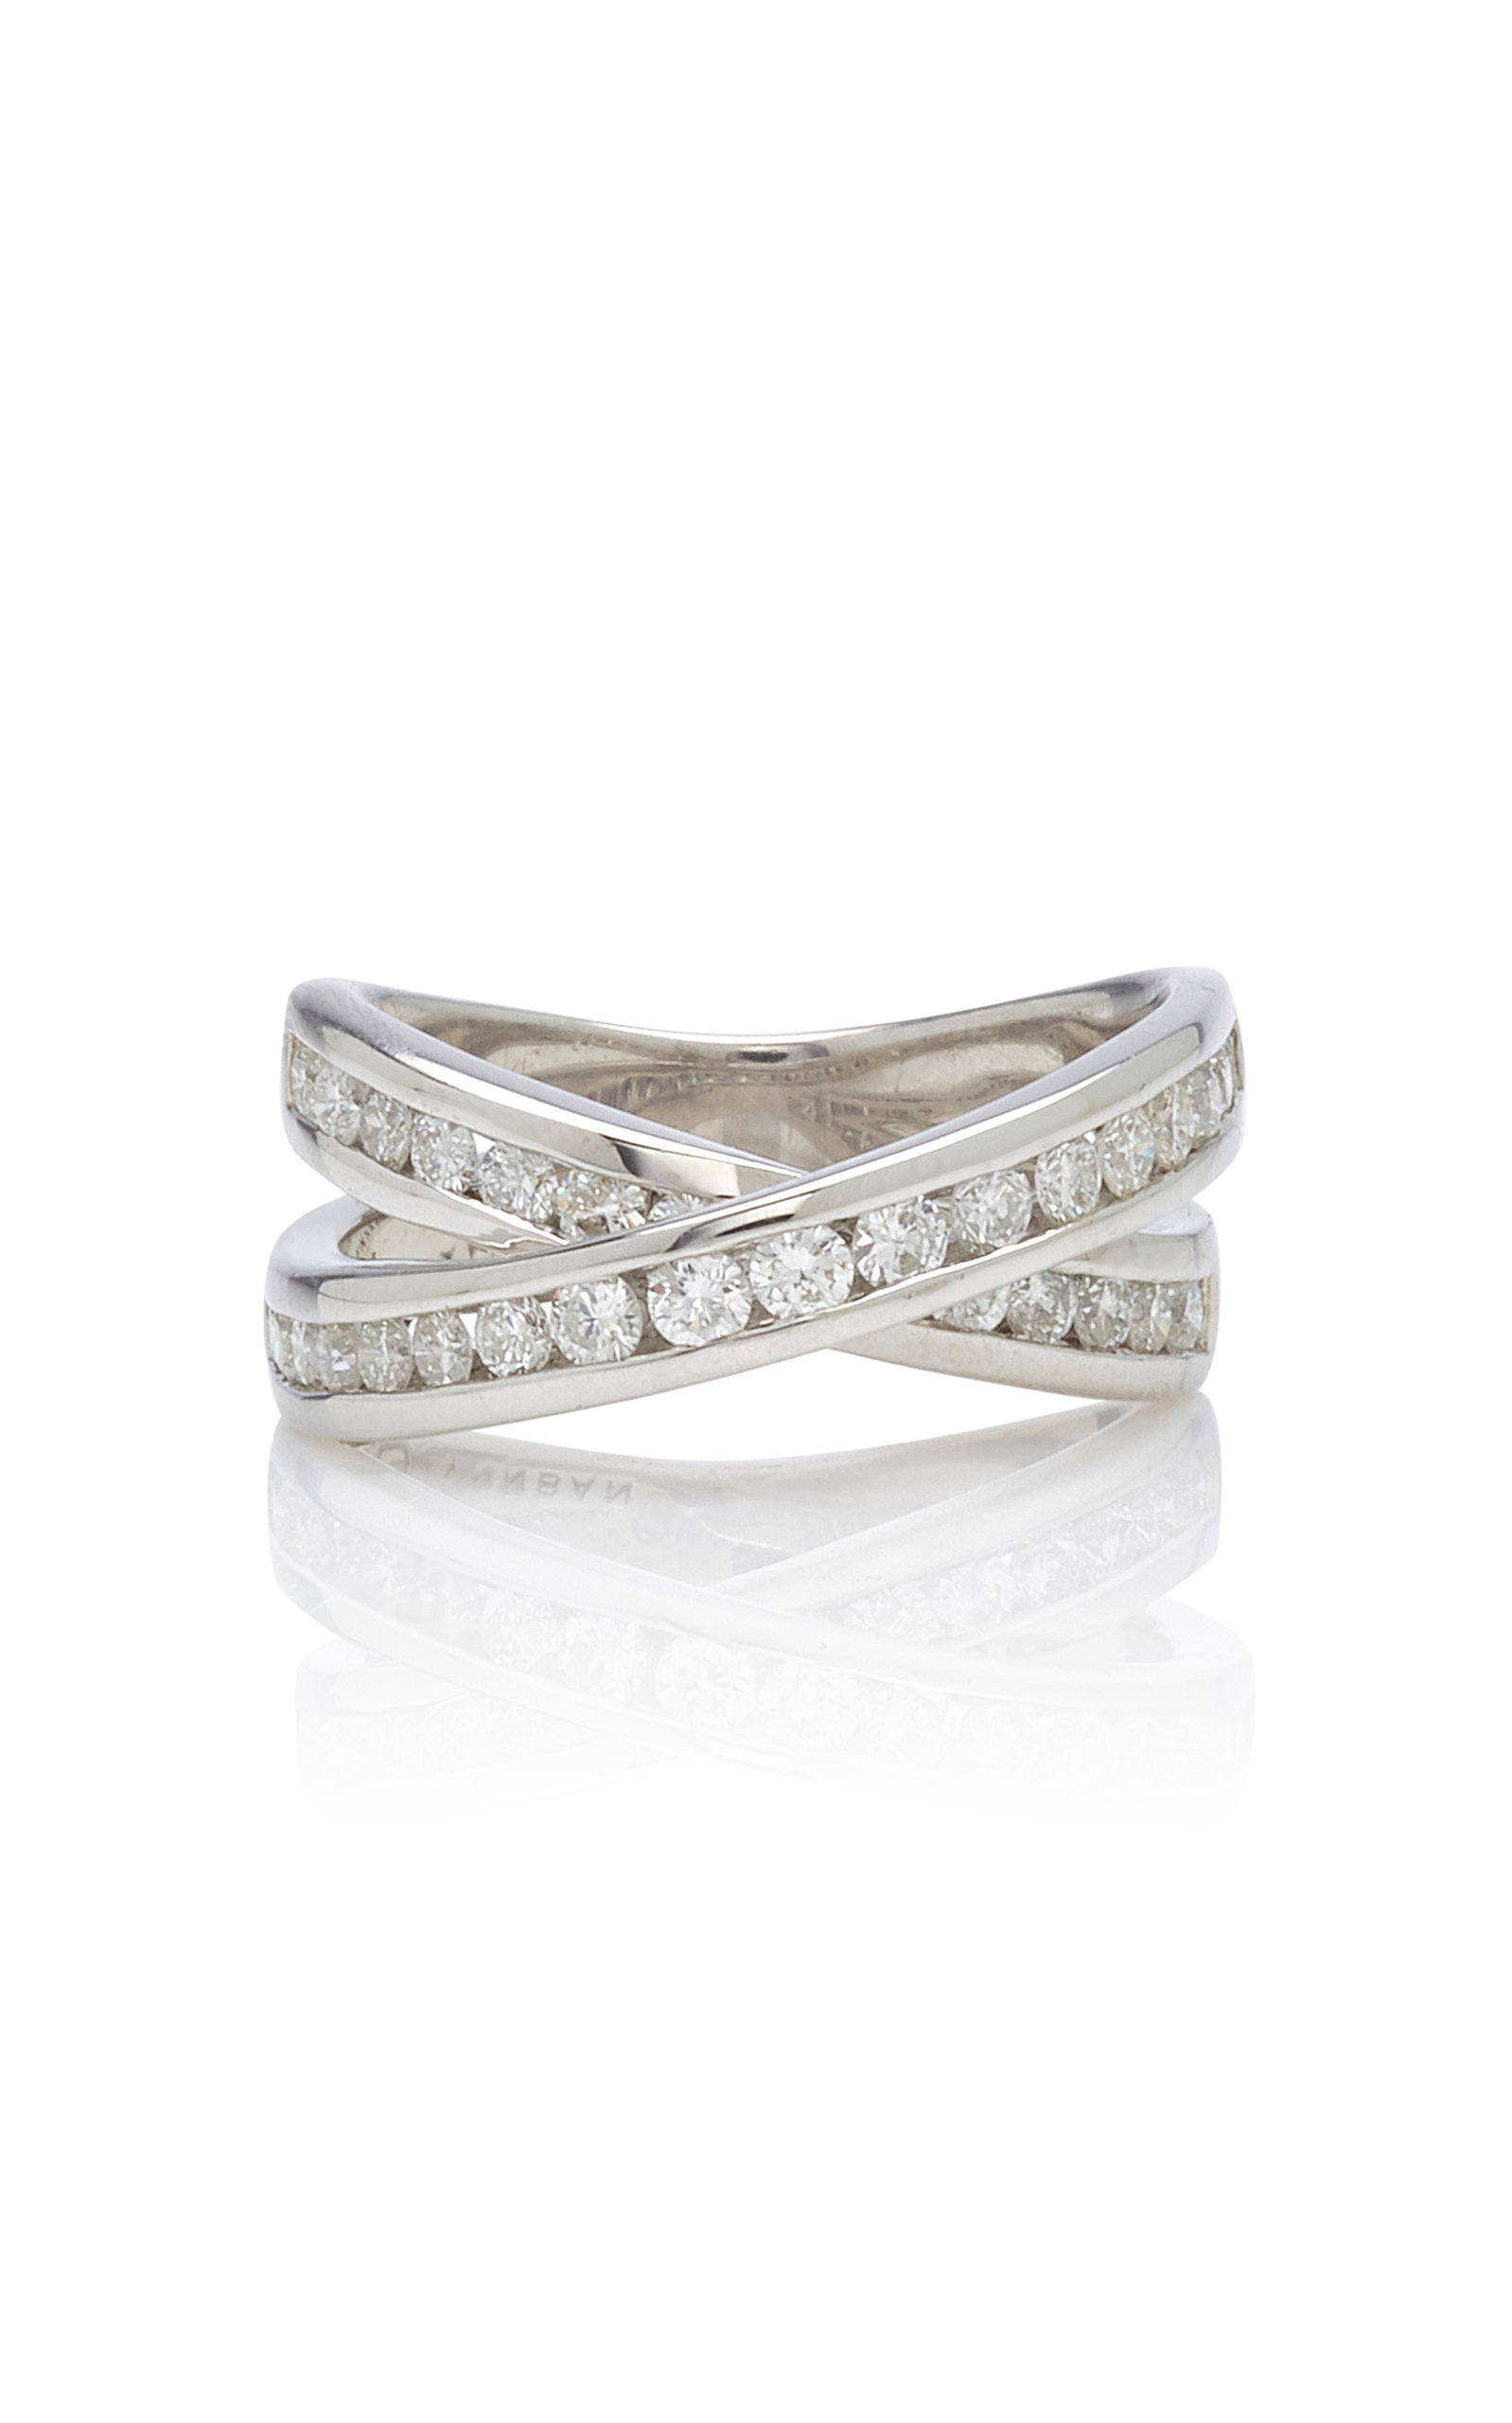 Women's Infinity Sterling Silver And Diamond Ring